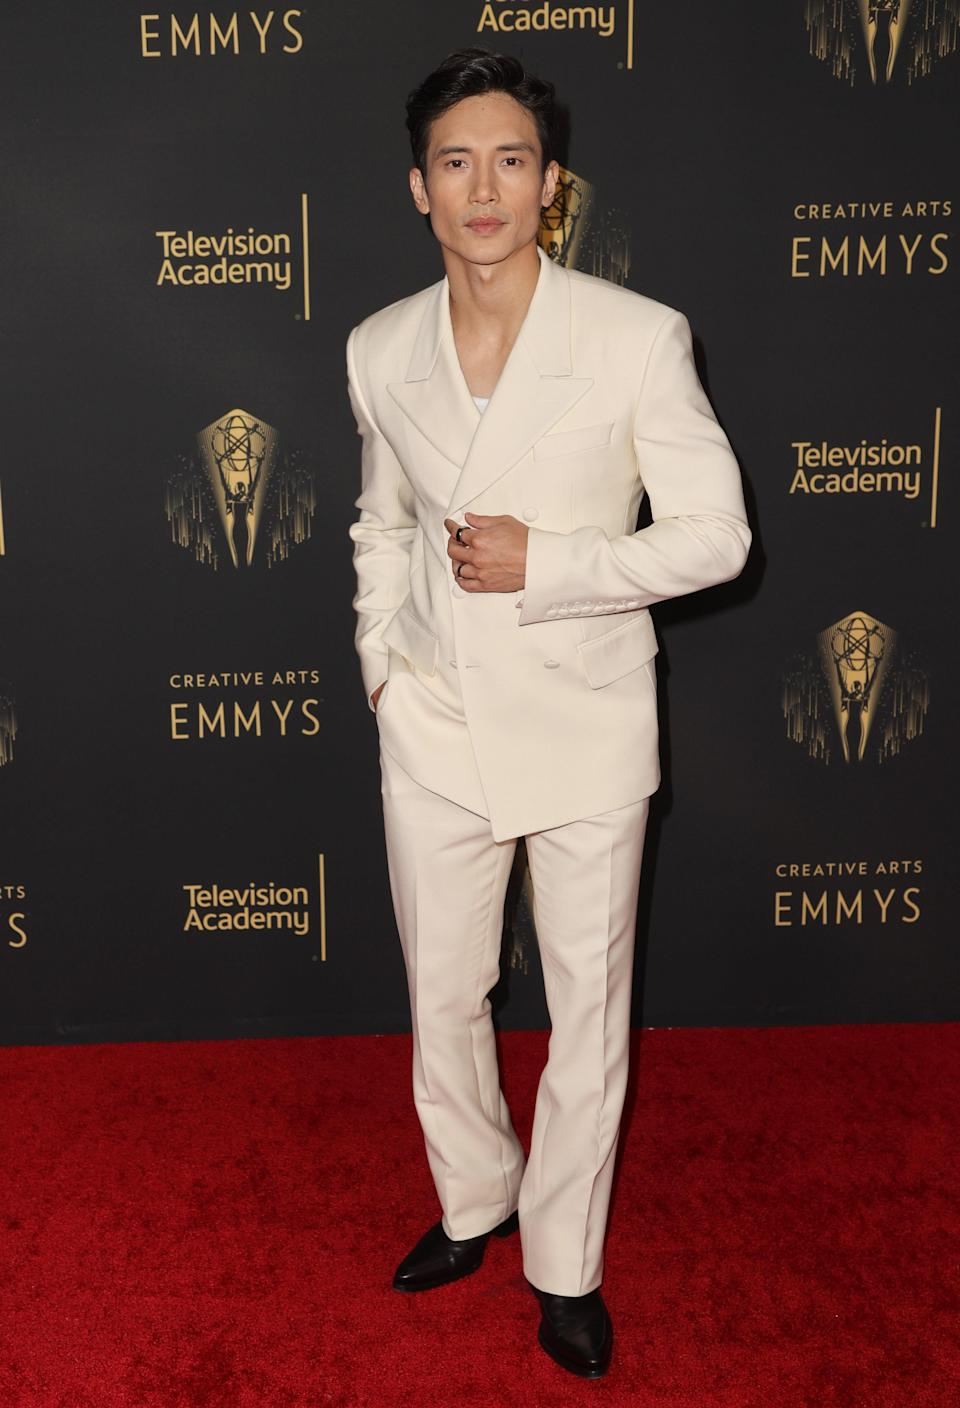 Chic, chic, chic! We love an all-white suit like the one Manny rocked on the carpet.